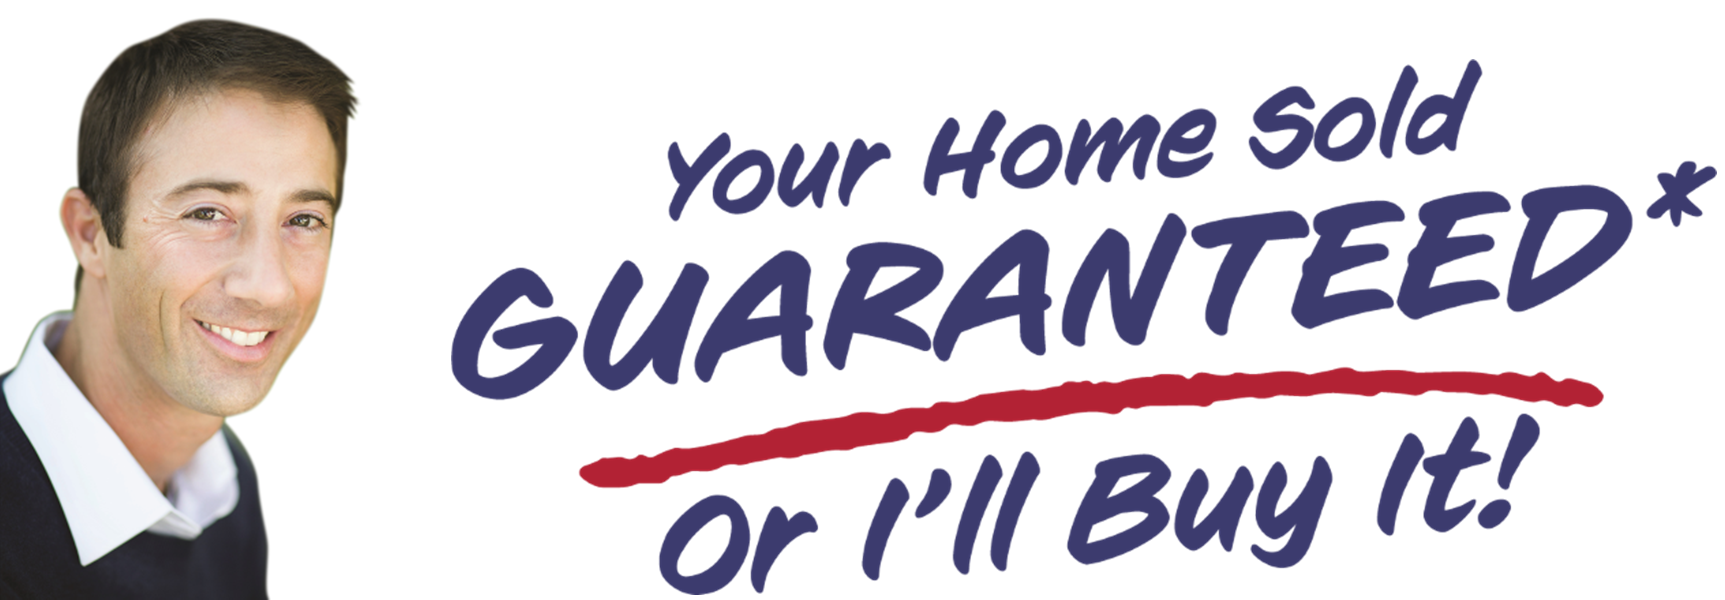 Your Home Sold Guaranteed Or I'll Buy It – Samuel Weiner logo